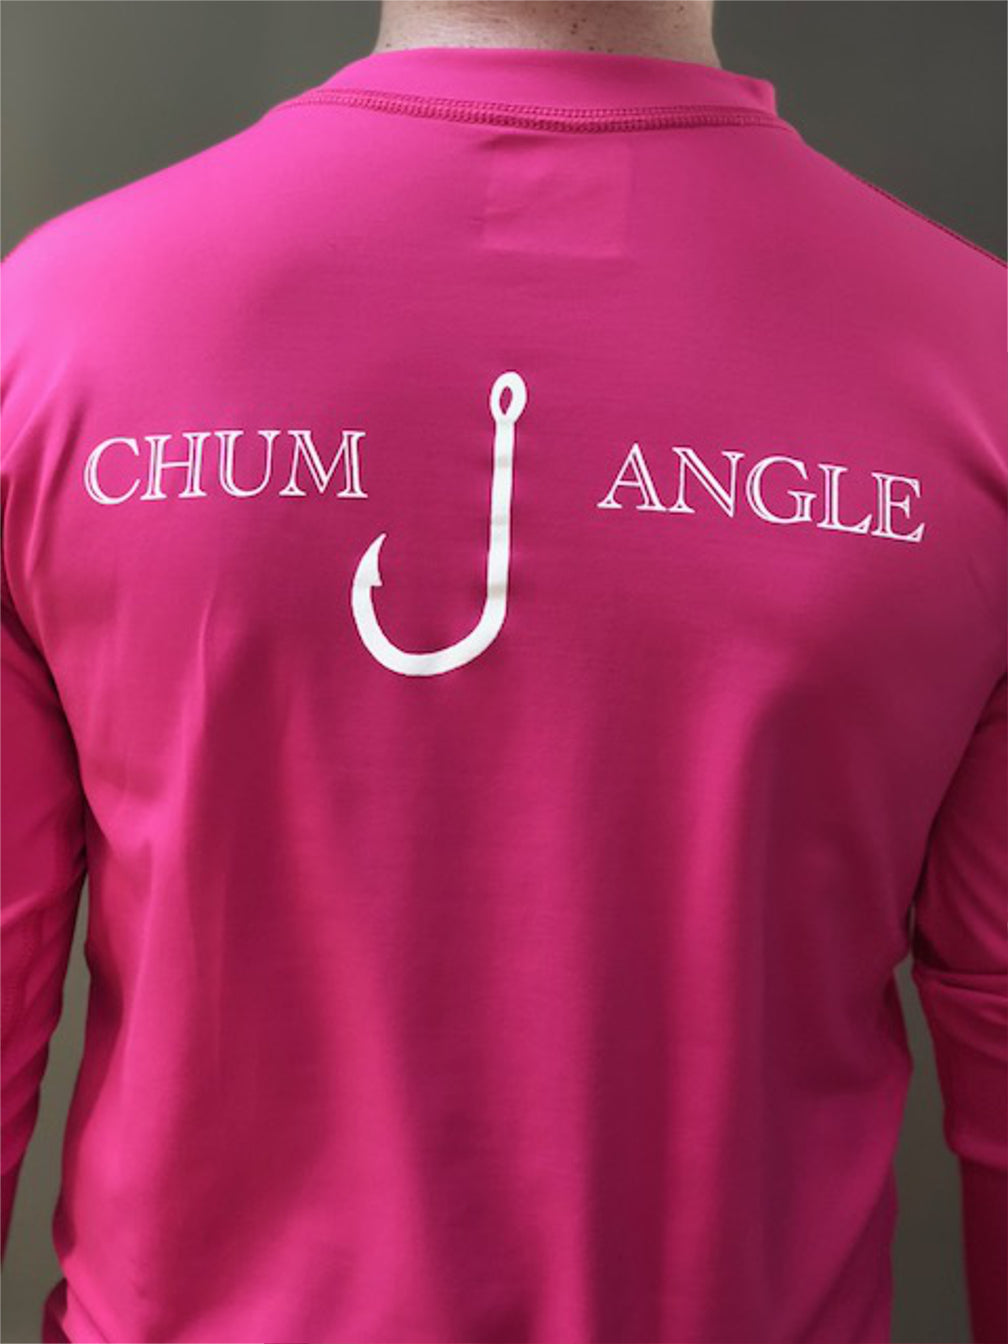 Girls Youth Chum Angle SPF/Rash Guard Shirt